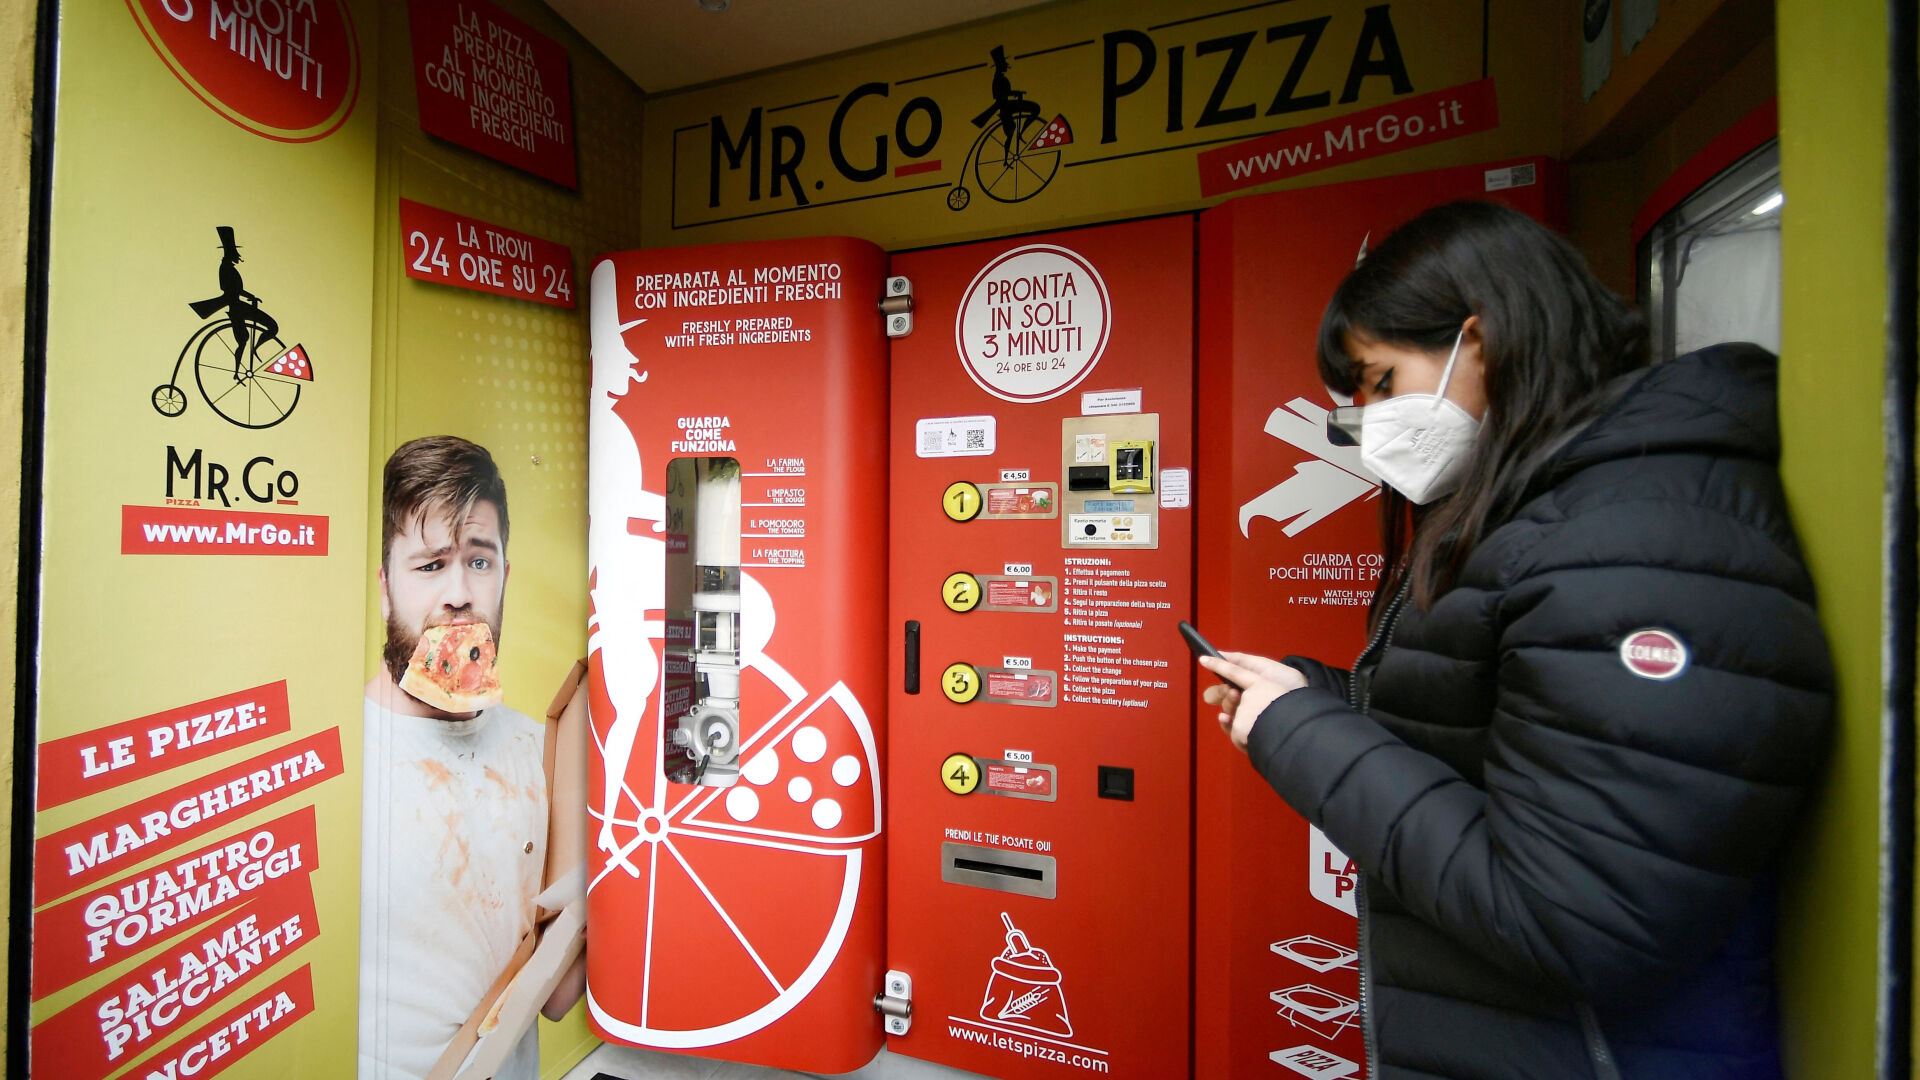 <p>Owner Massimo Bucolo trained as a pizzaiolo before opening the vending machine.</p>